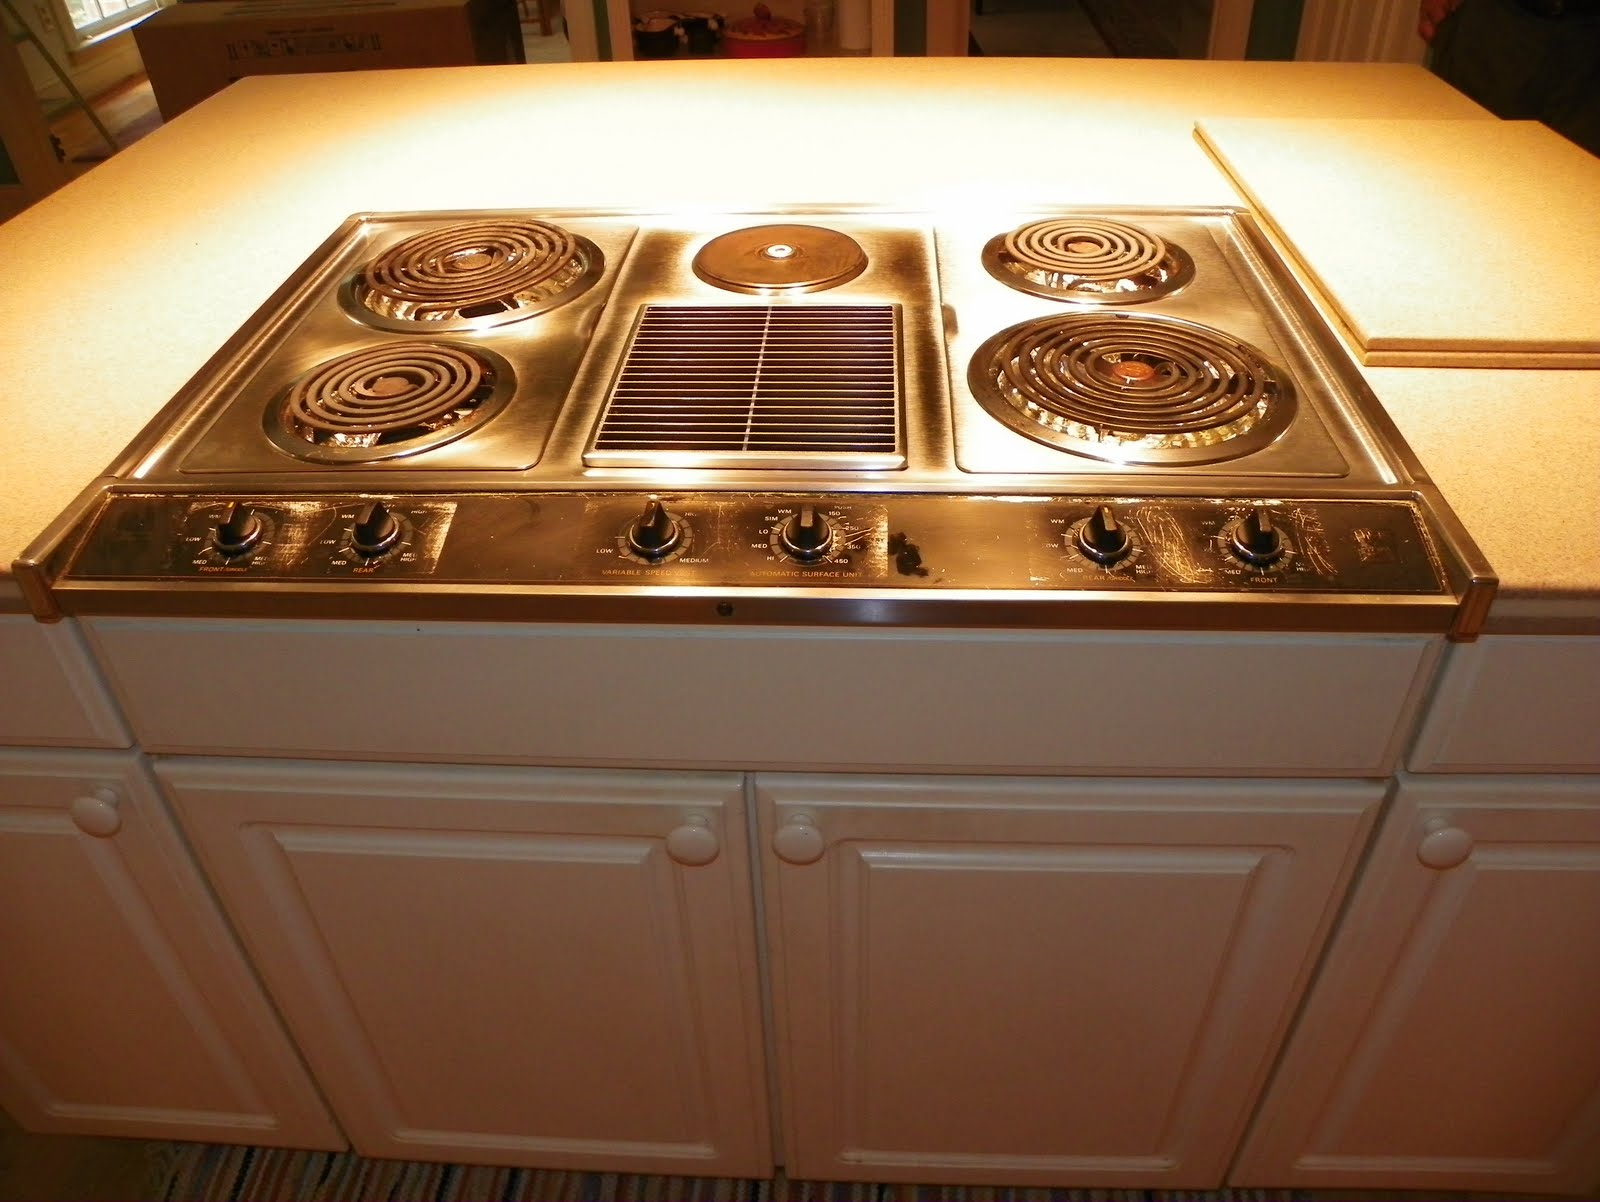 Stove Countertop Replacement : ... Countertop Repair Blog: Corian Countertop Alteration. New Cooktop